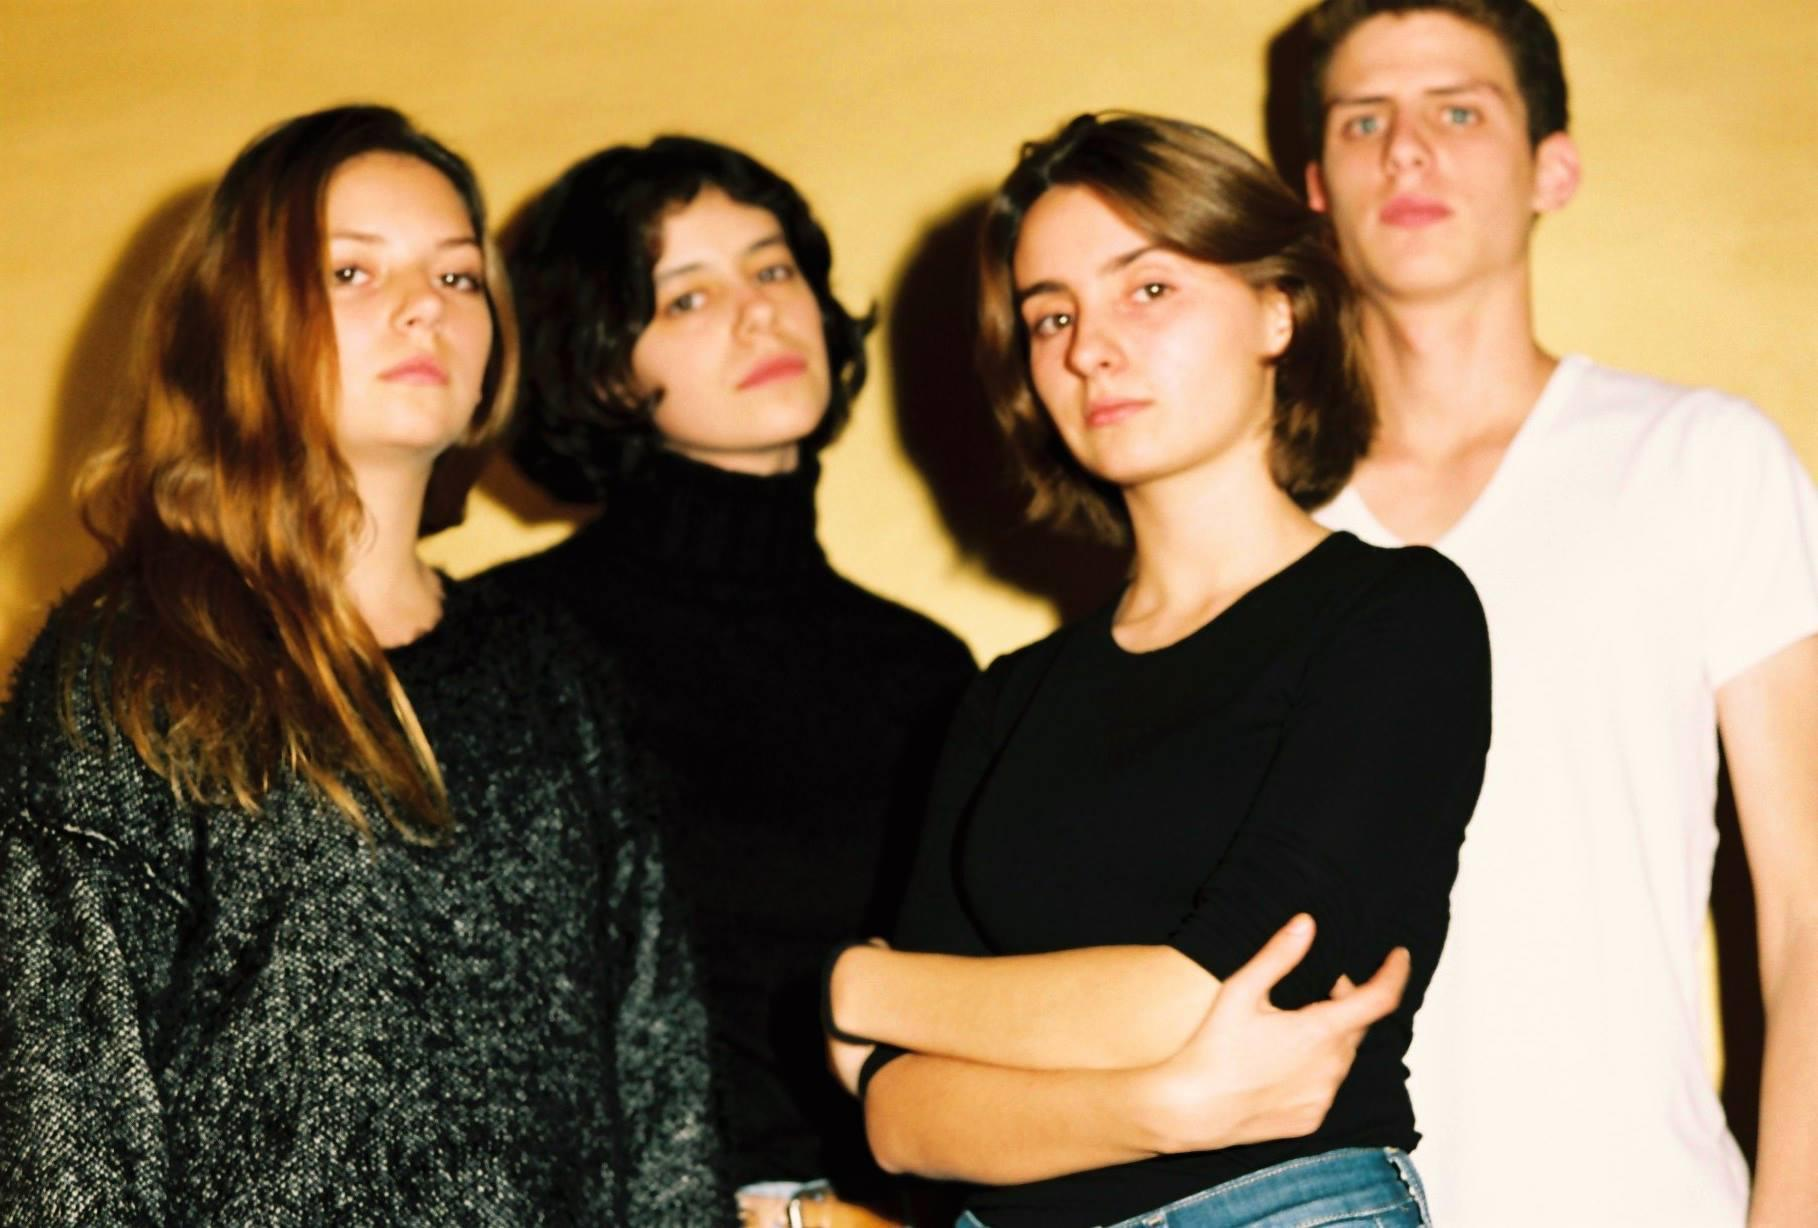 MOURN go public with label dispute